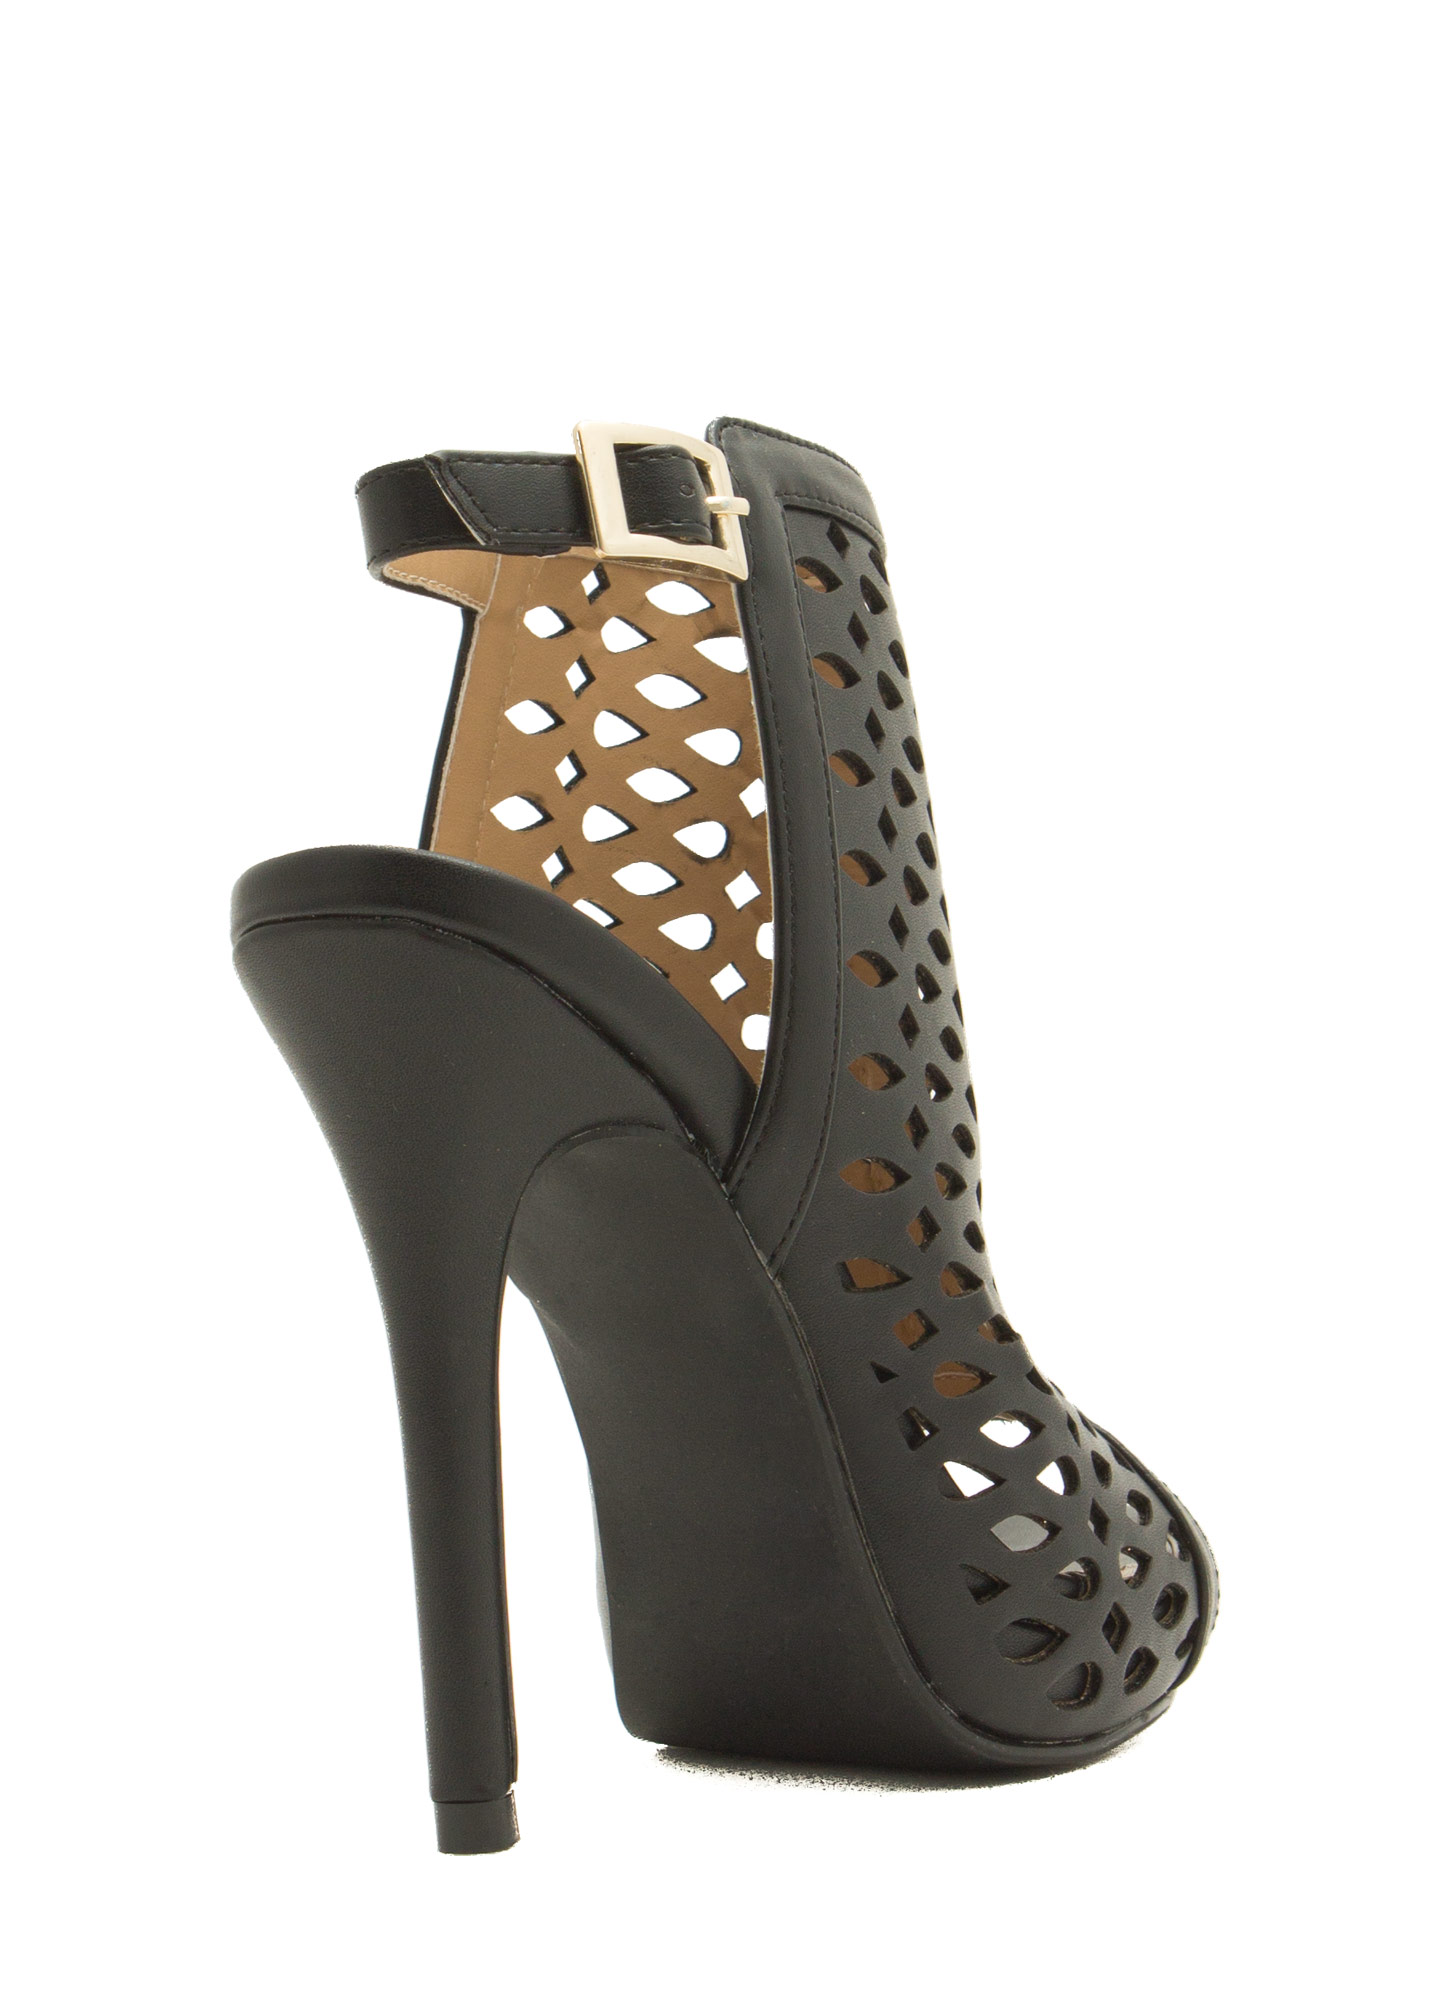 Marquis N Teardrop Cut-Out Heels BLACK